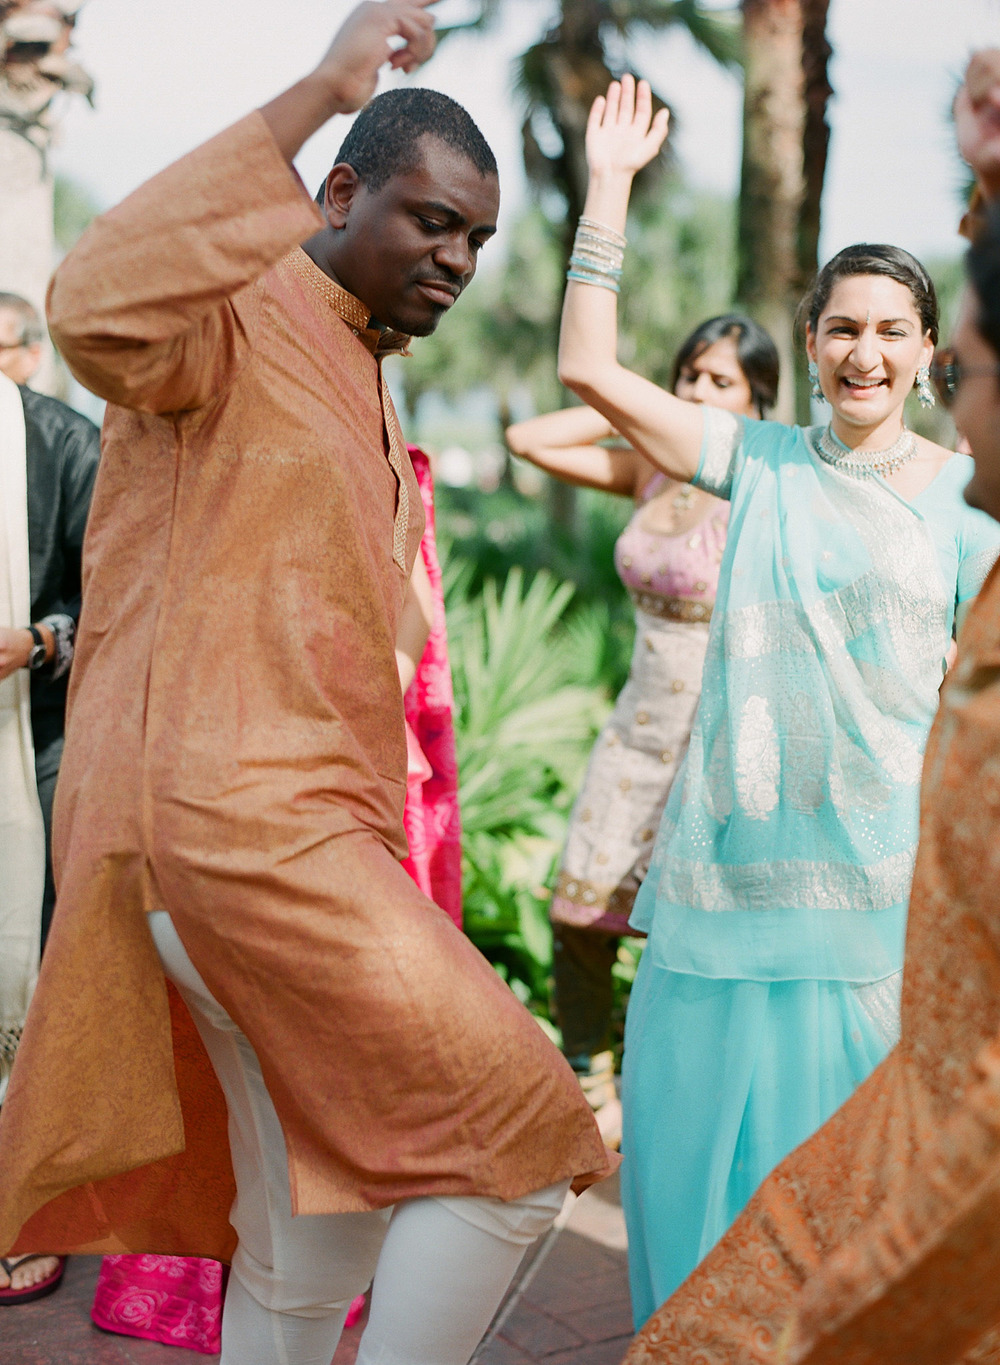 people dance at the groom's parade at this Indian Wedding in Florida photographed by Destination Wedding Photographer, LExia Frank - a top indian wedding photographer - who shoots film for luxury indian weddings preferring the soft skin tones and vibrant colors for indian weddings in india and worldwide